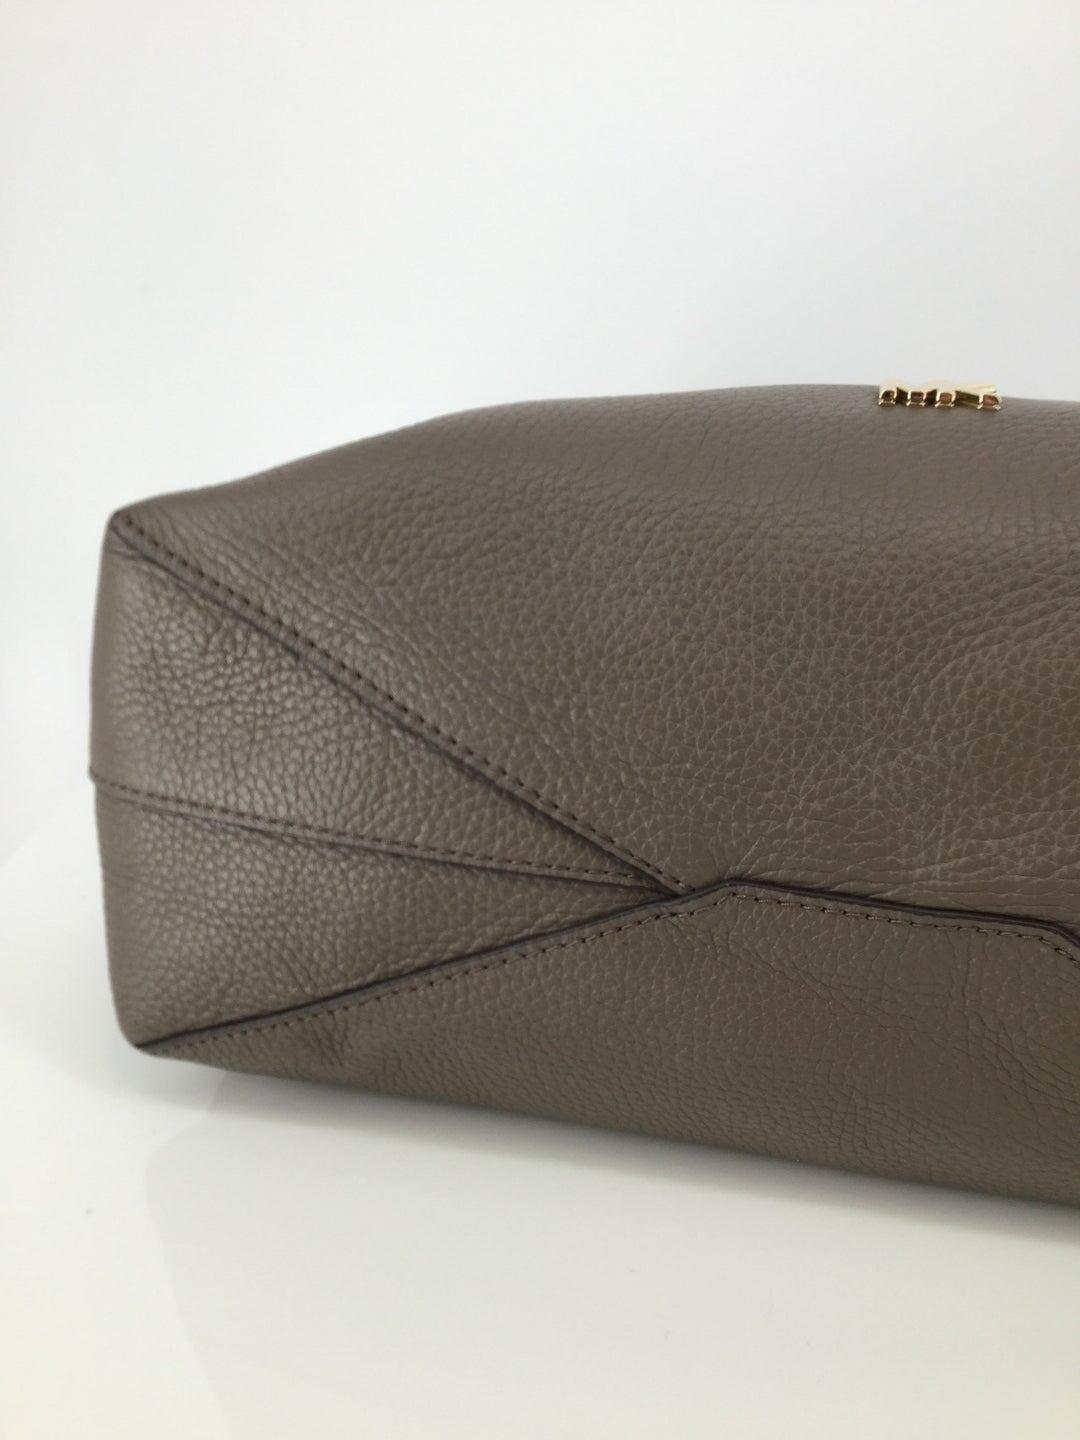 Michael Kors Designer Handbag, Taupe, Size Medium - <P>CLASS UP YOUR CLOSET WITH THIS TAUPE MICHAEL KORS DESIGNER HANDBAG. MEASURES 11 INCHES TALL AND 16 INCHES WIDE. POCKET ON THE BACK OF HANDBAG AND 3 POCKETS ON THE INSIDE. MAKE HER YOURS TODAY FOR ONLY $60.</P>